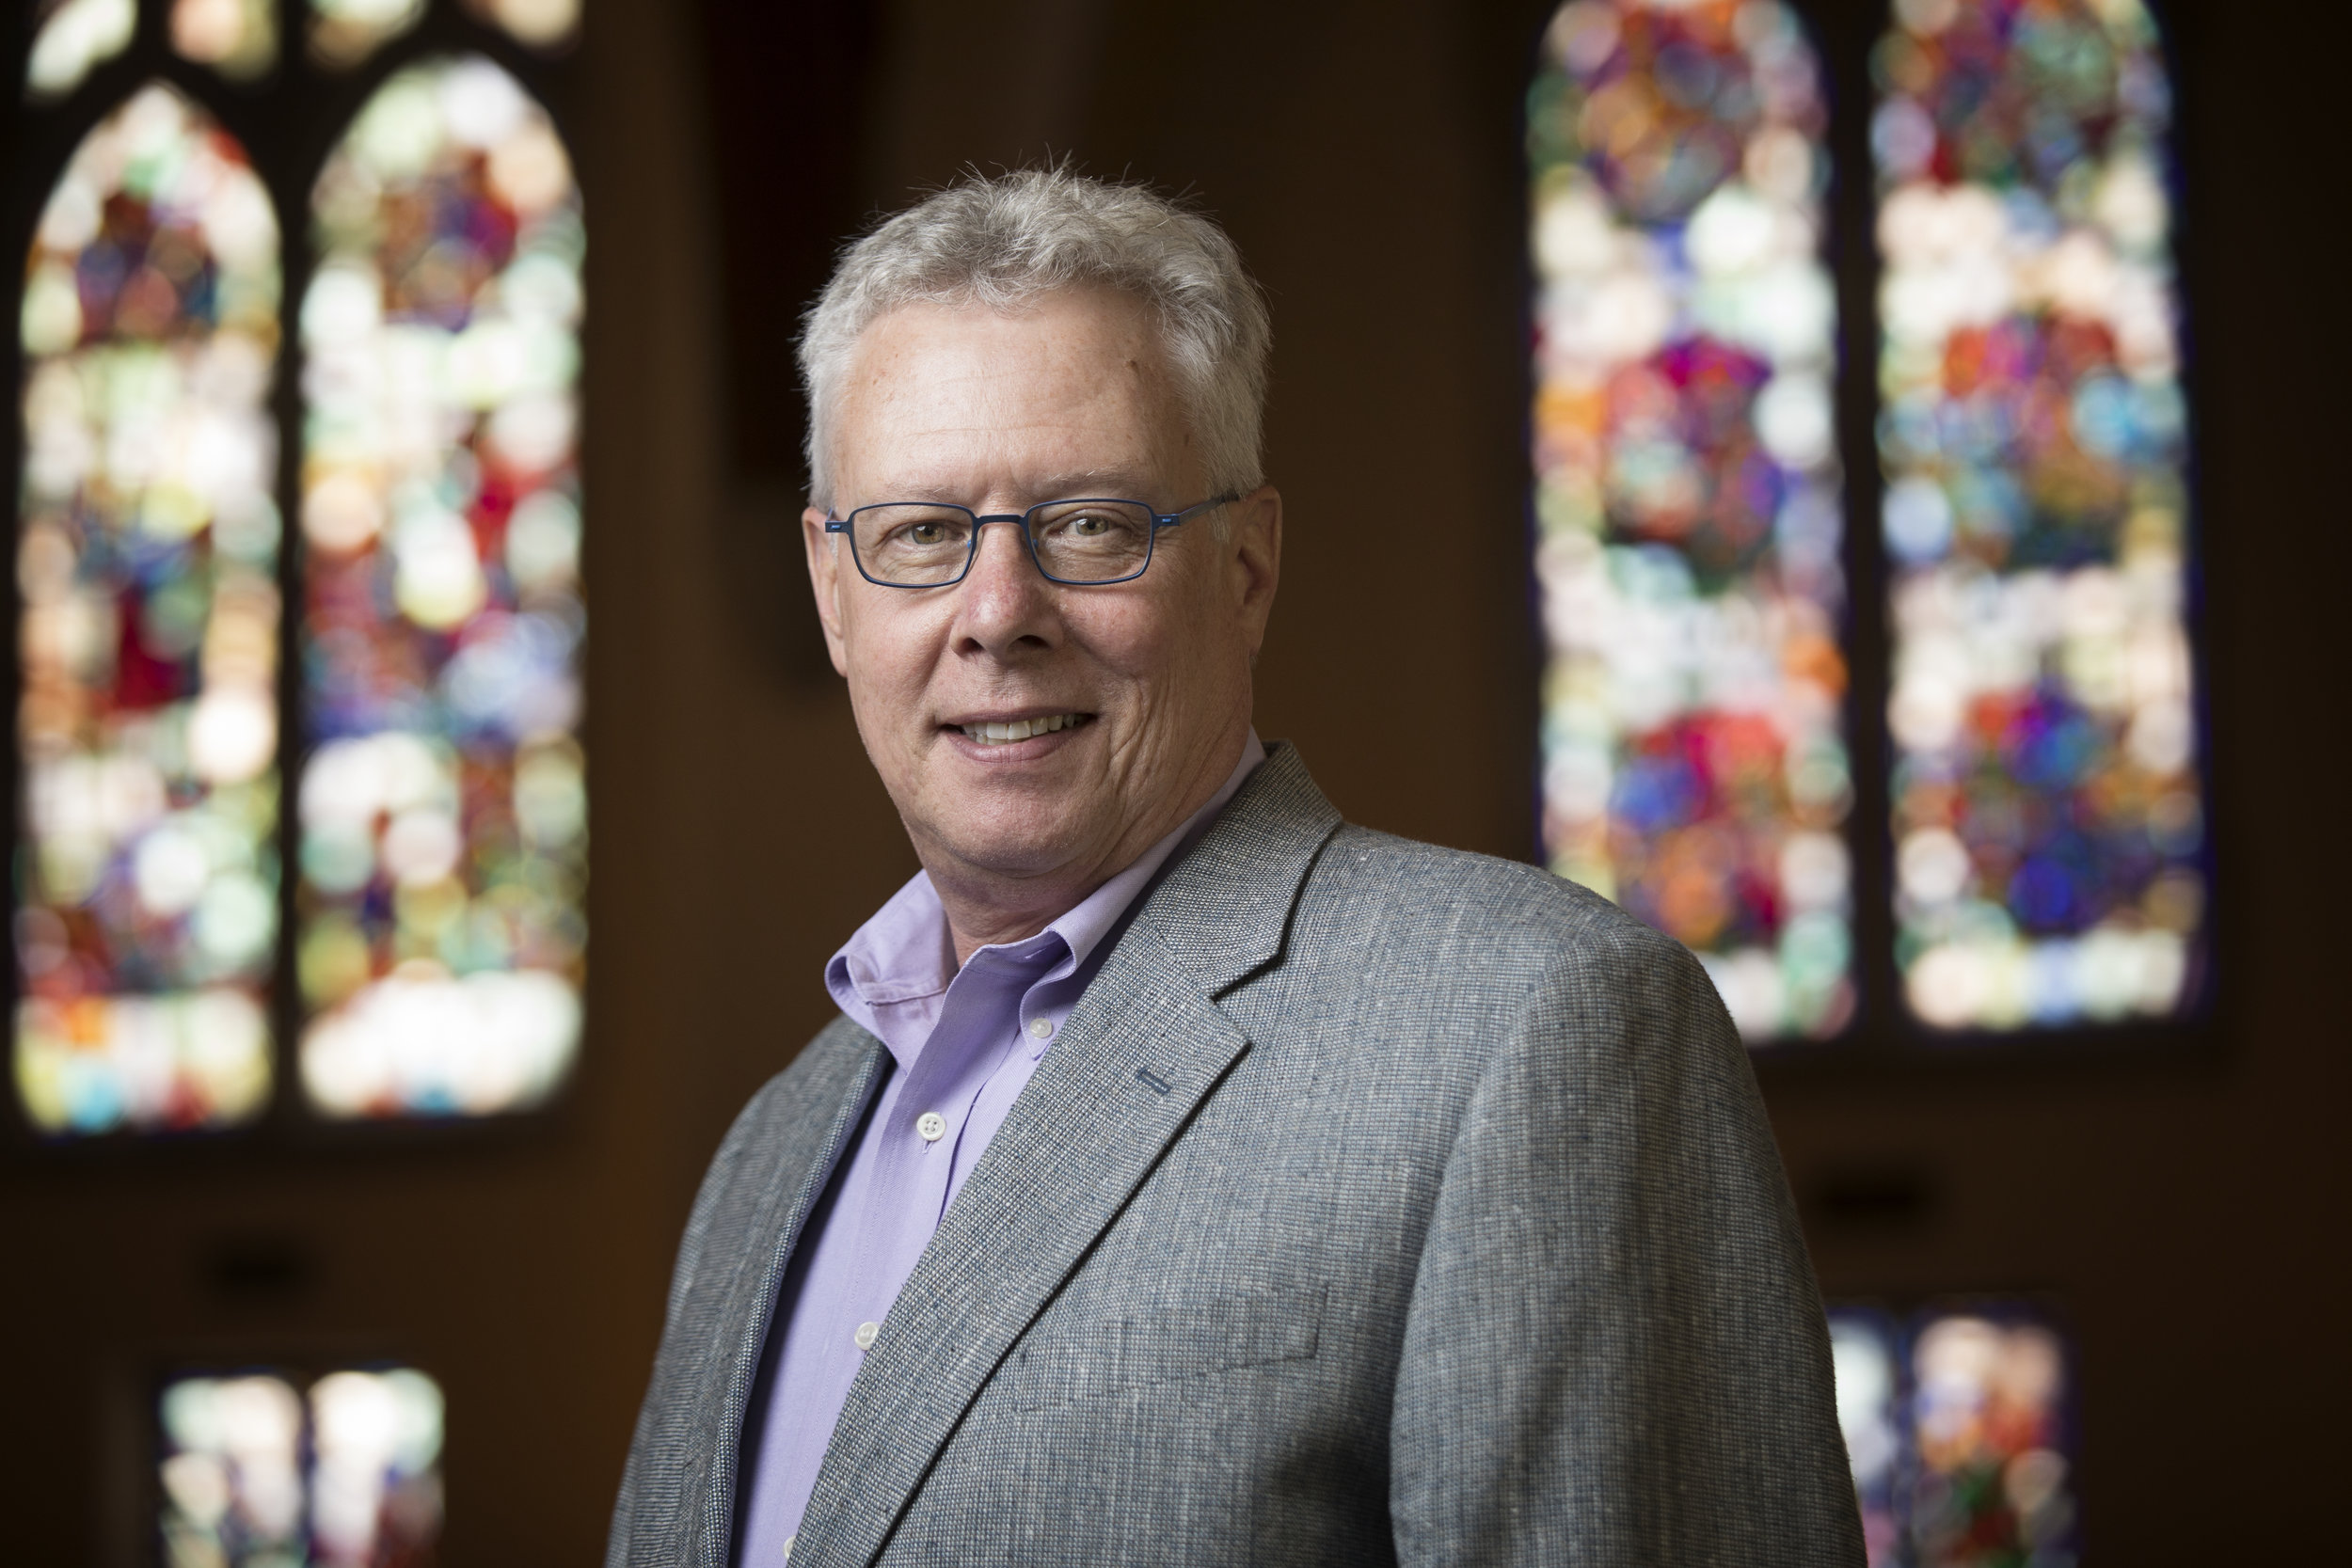 Rev. Chip Blankinship - Director of Operations and Congregational Consultant